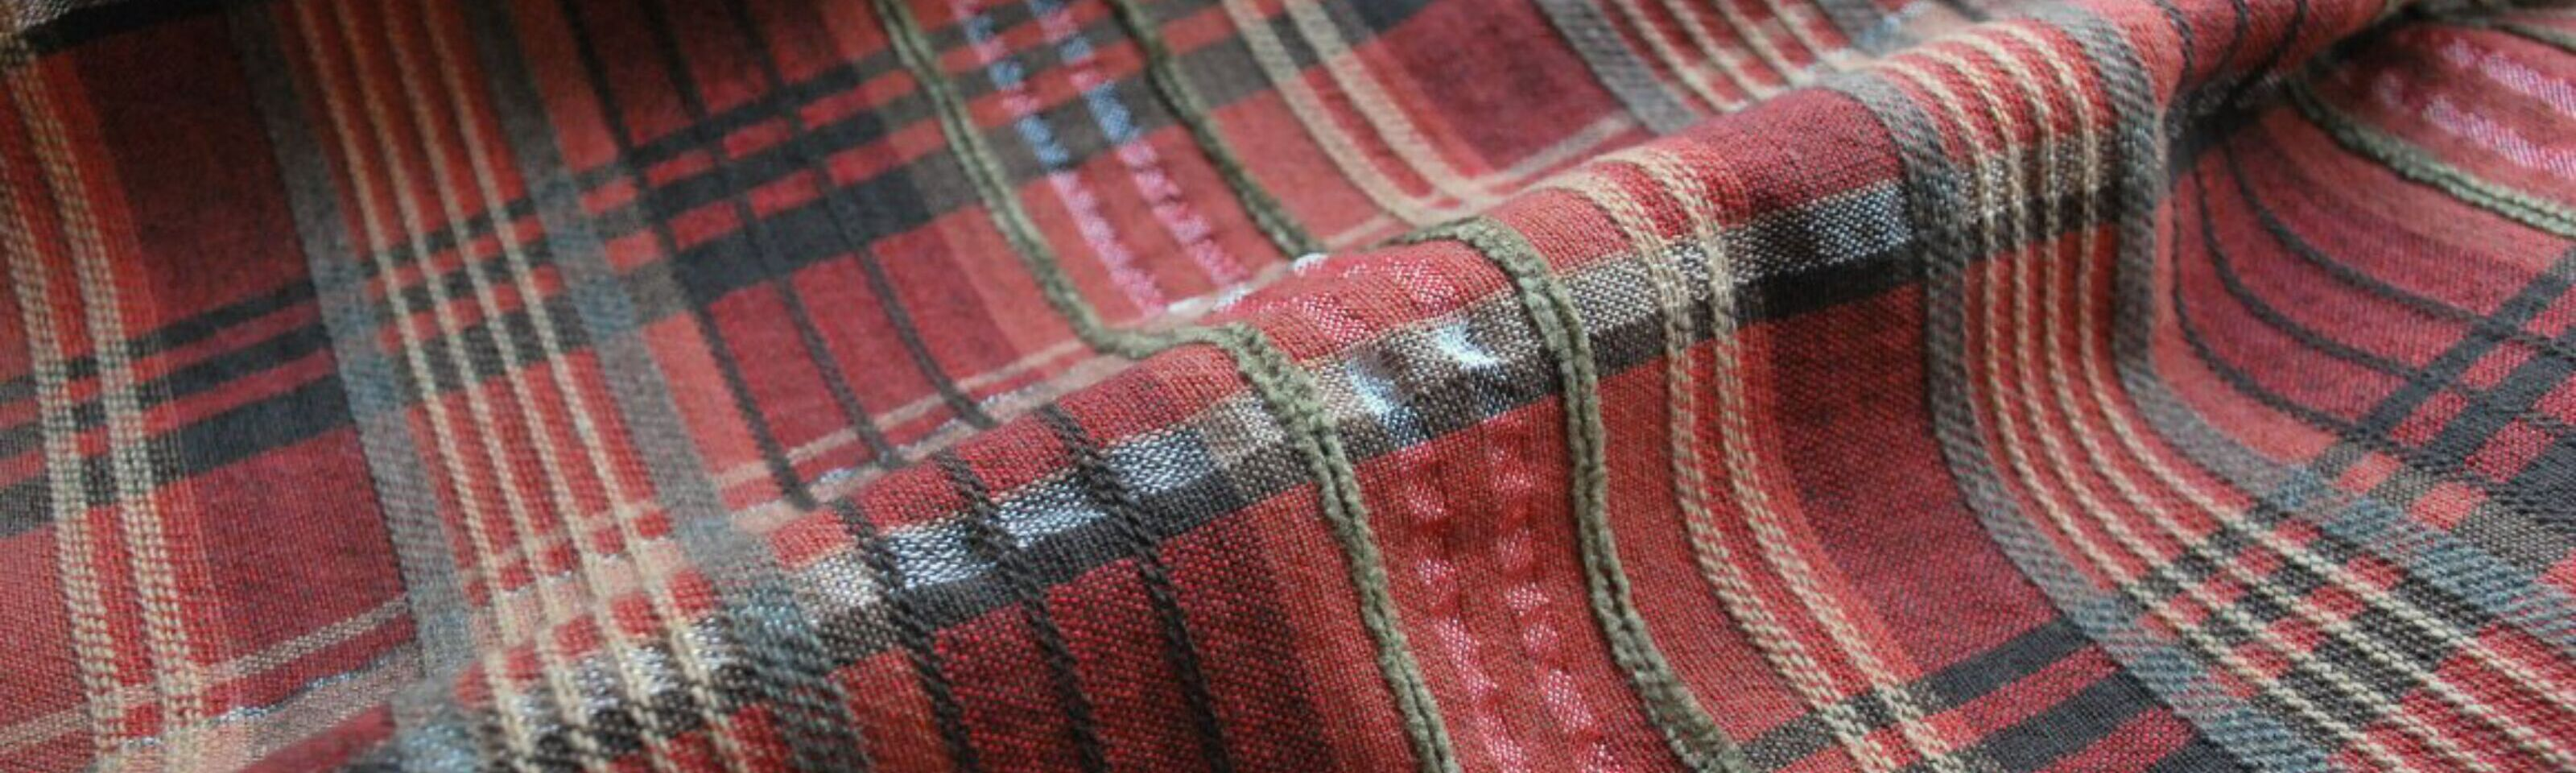 Something Stirring_plaid suiting dress fabric_close up